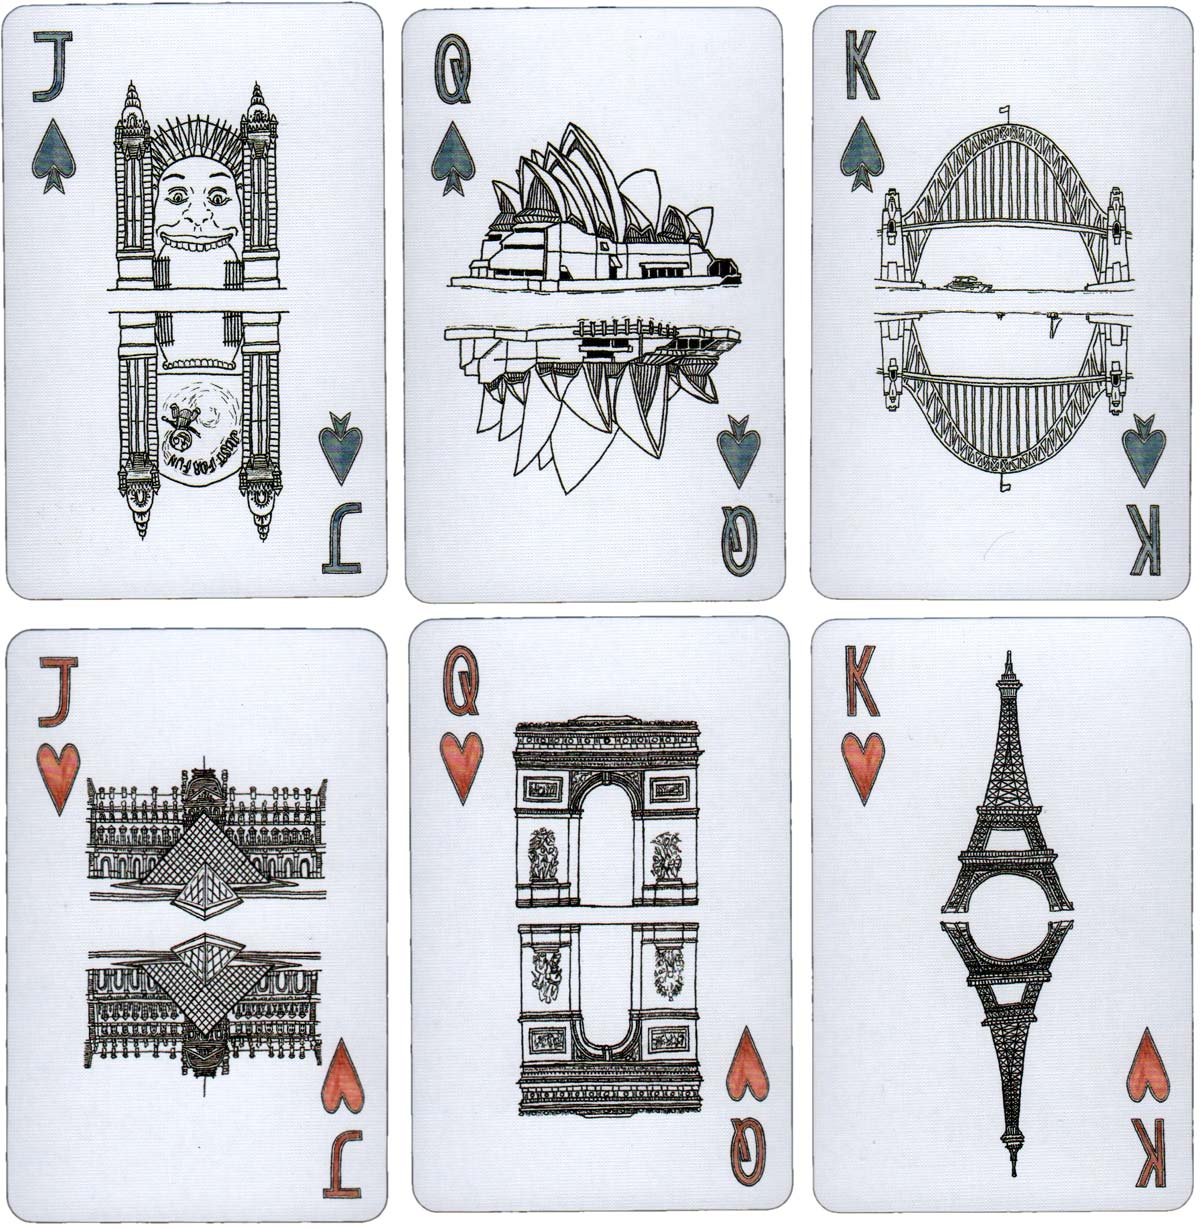 Erlenmeyer City Sights hand-illustrated playing cards by Stephanie Gray, 2015